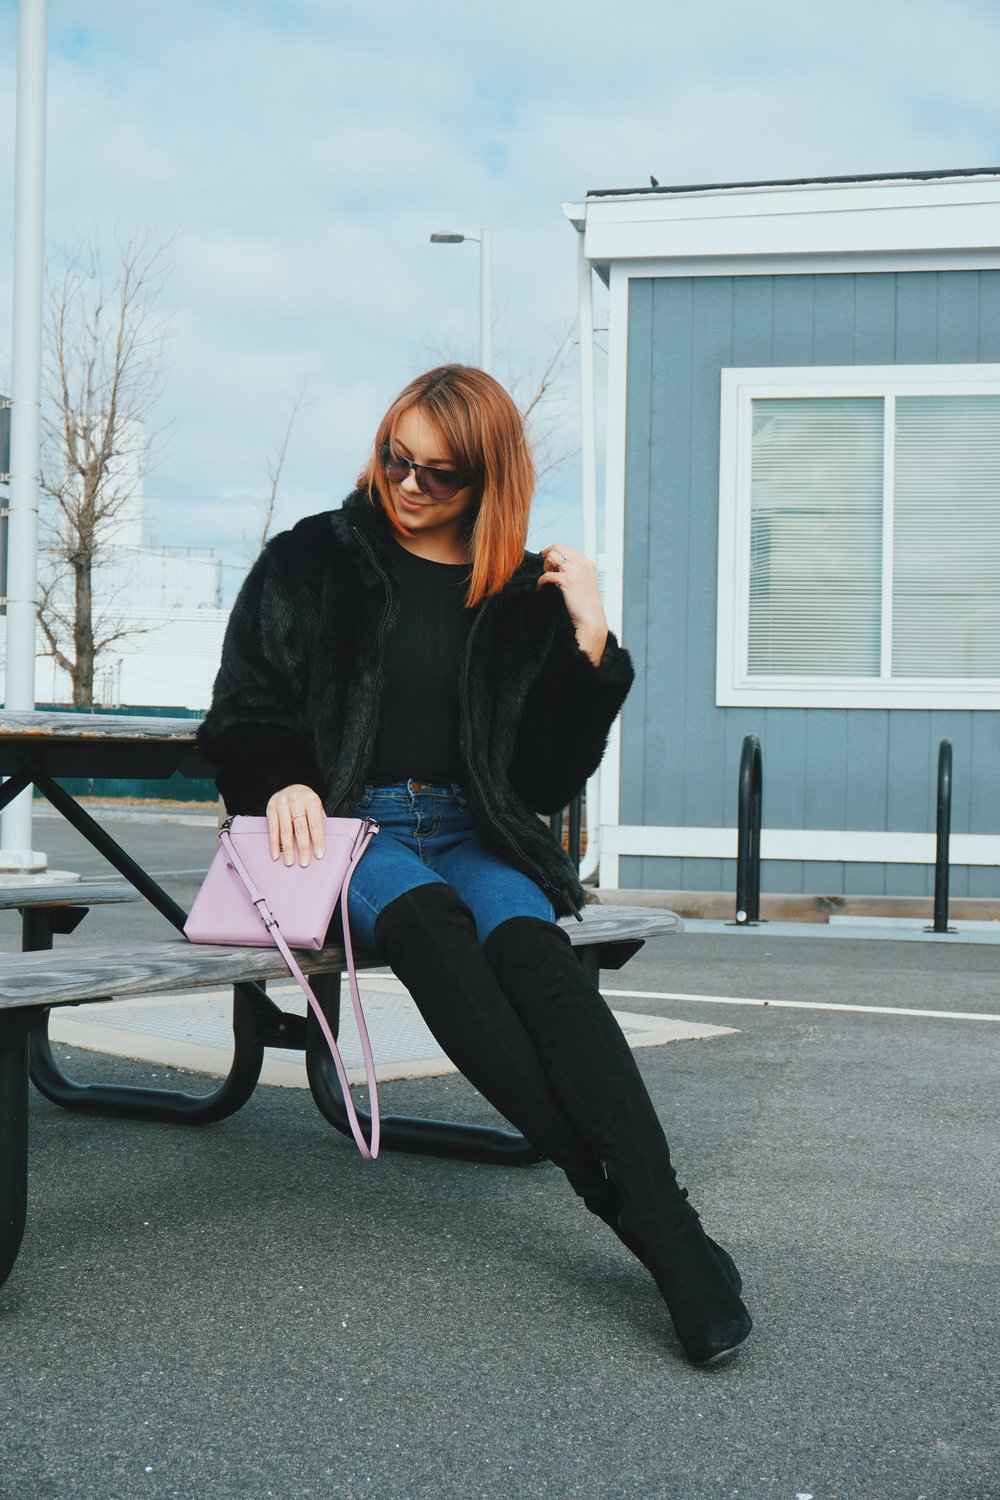 Girl sitting on a bench, wearing black faux-fur coat, denim jeans, OTK boots, and a pink crossbody bag.